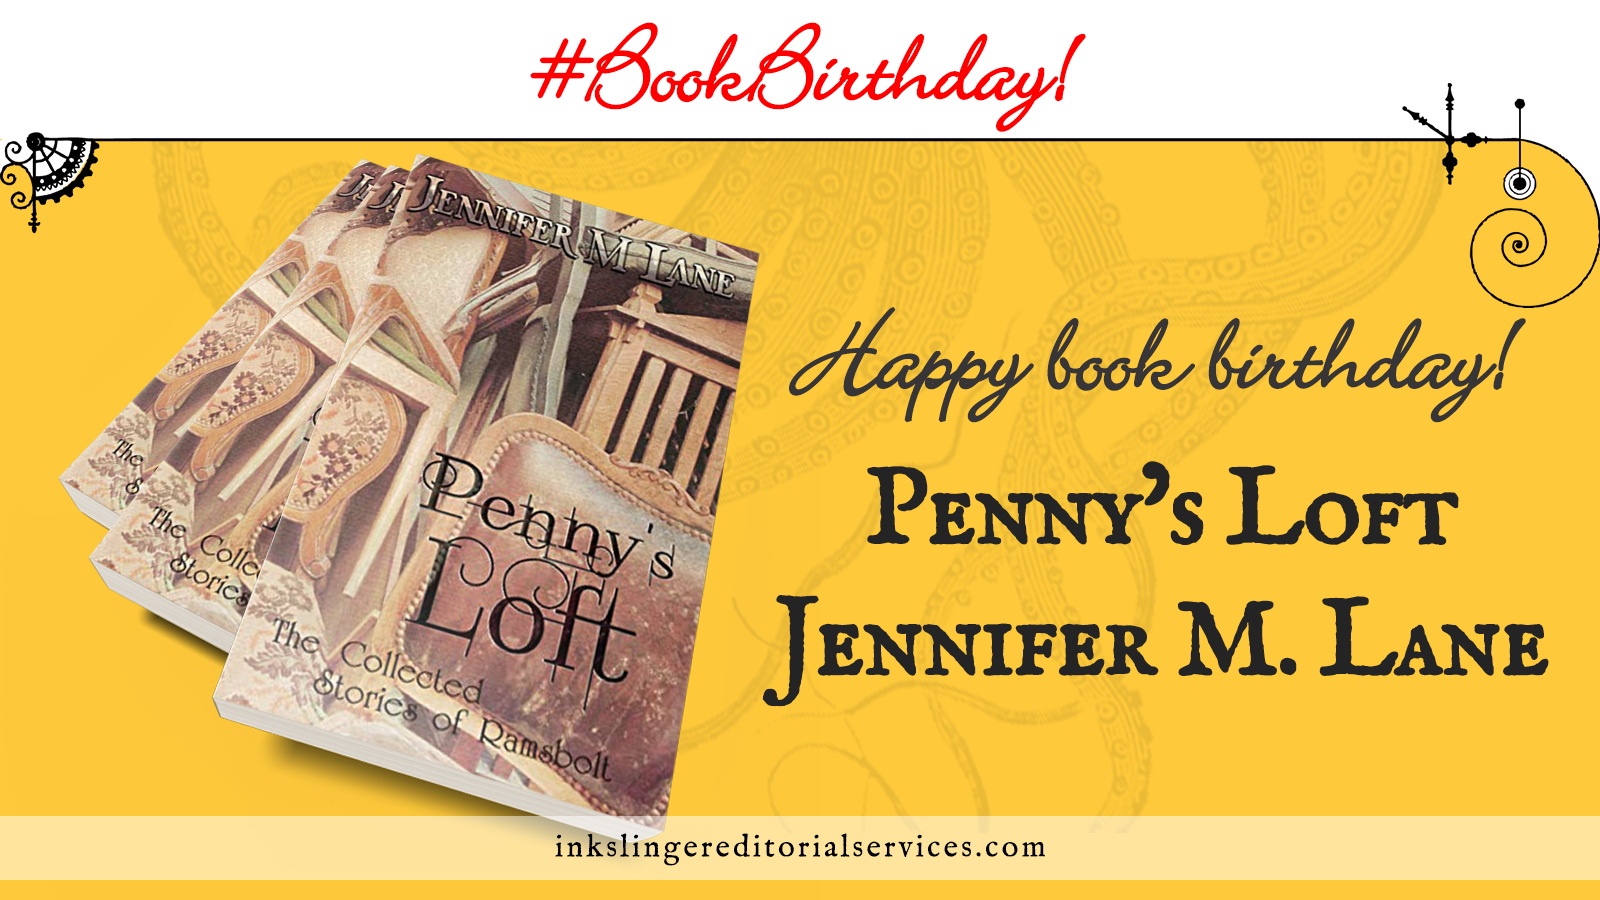 Happy book birthday! Three copies of Penny's Loft by Jennifer M. Lane #BookBirthday